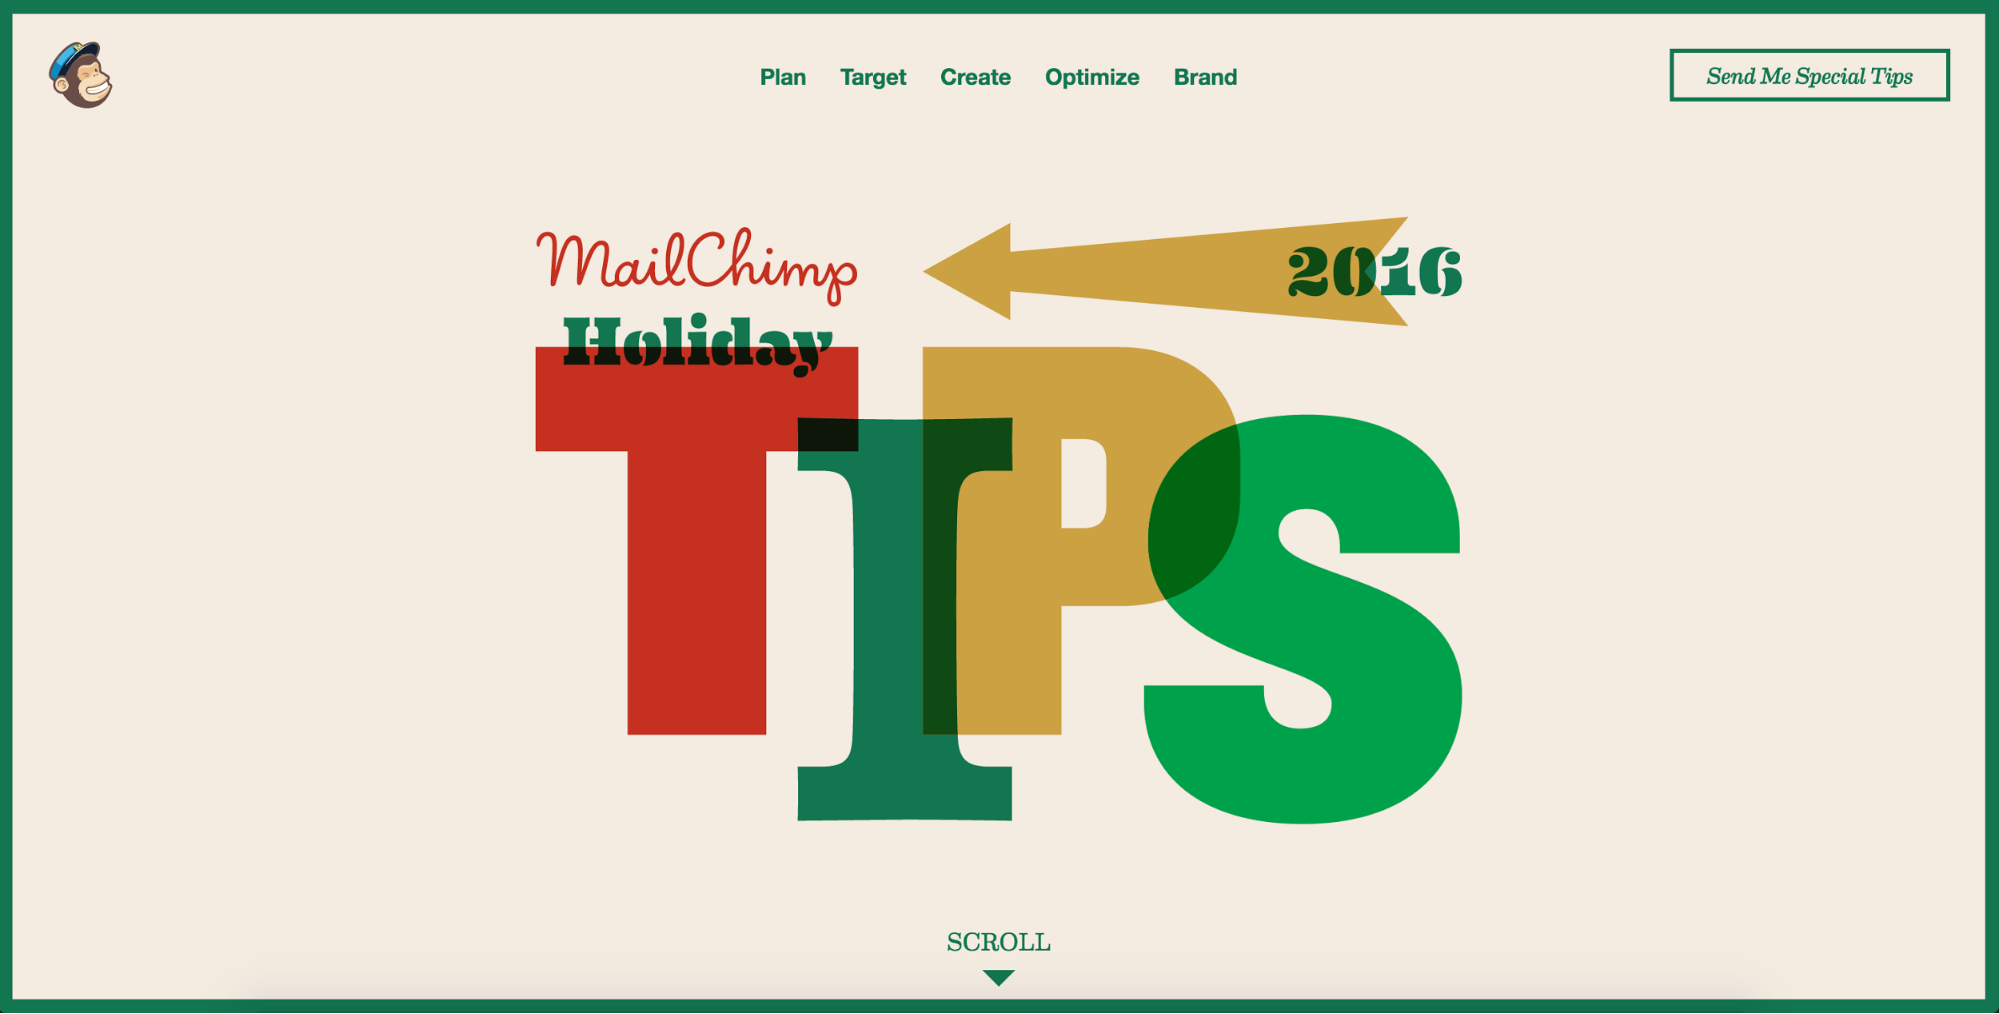 MailChimp holiday marketing tips